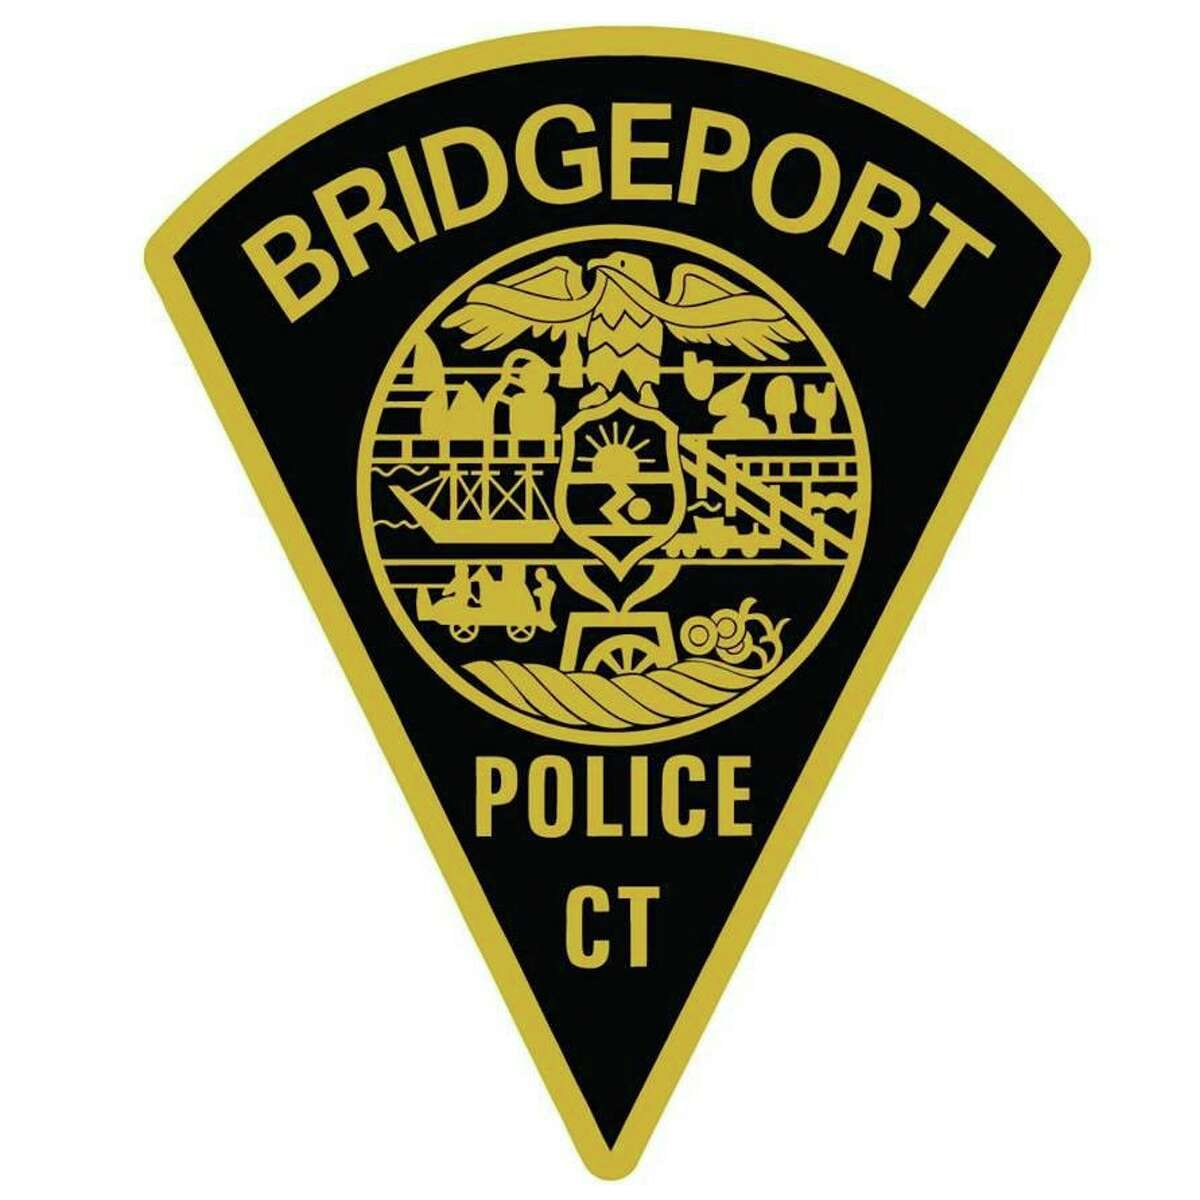 Police said they were contacted at around 3 p.m. on Fridaym Sept. 18, 2020 that a stab would victim was brought to Bridgeport Hospital.